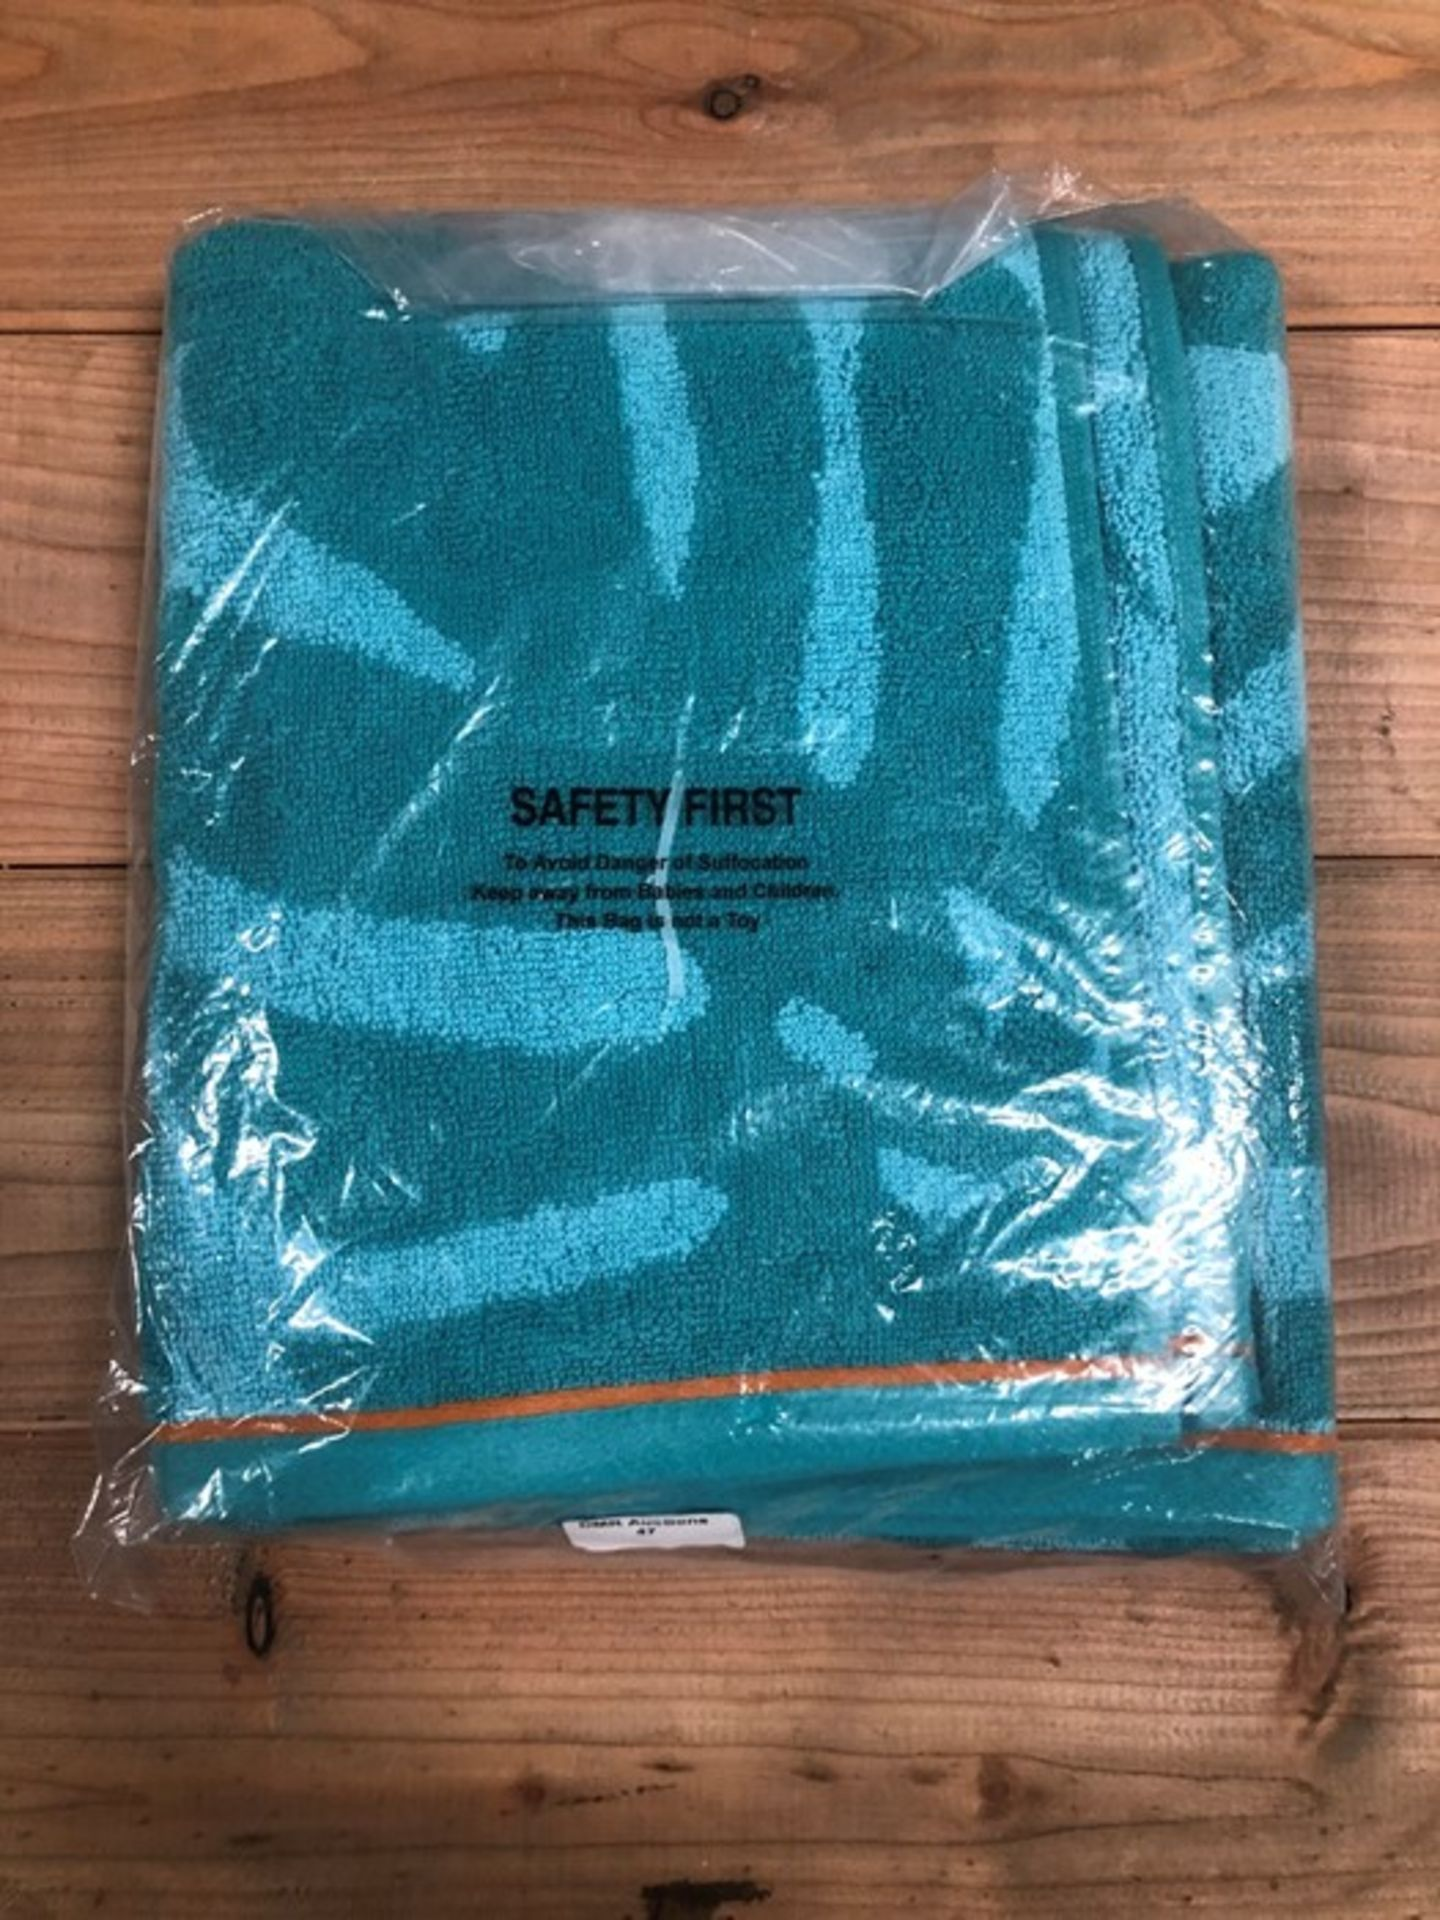 Lot 47 - 1 AS NEW BAGGED GOOD VIBES HAND TOWEL IN TEAL (PUBLIC VIEWING AVAILABLE)